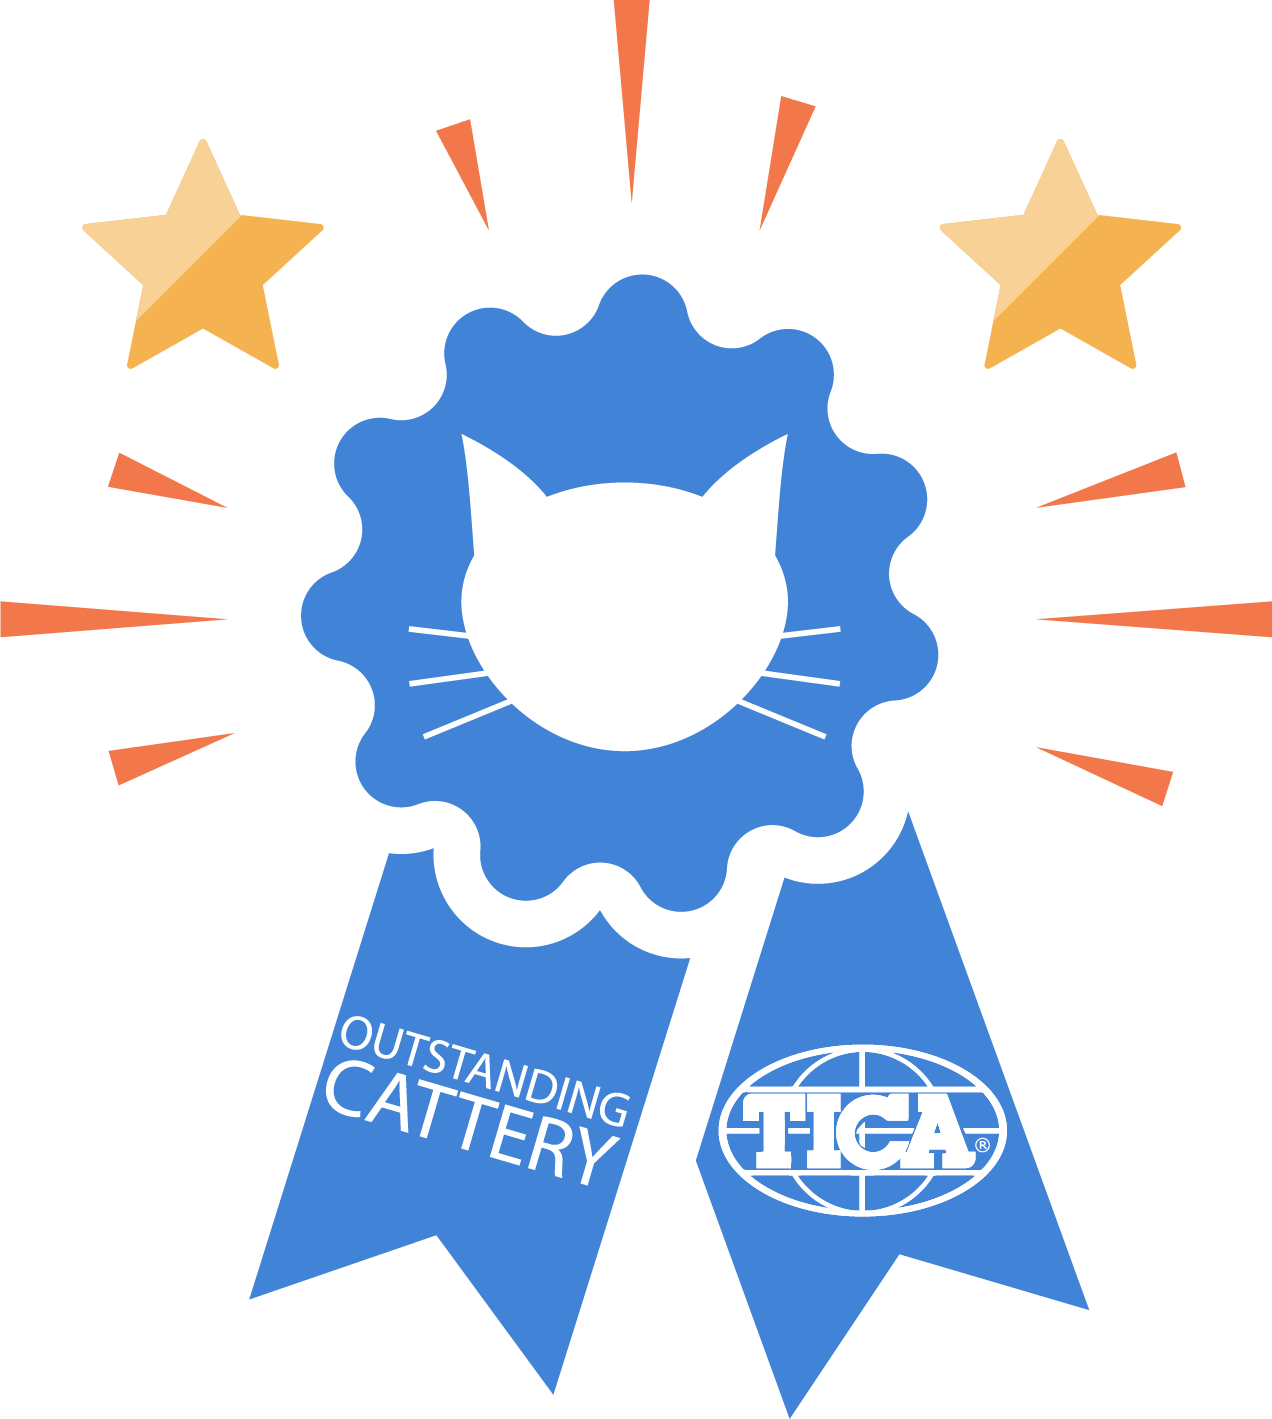 Outstanding Cattery Ribbon2019